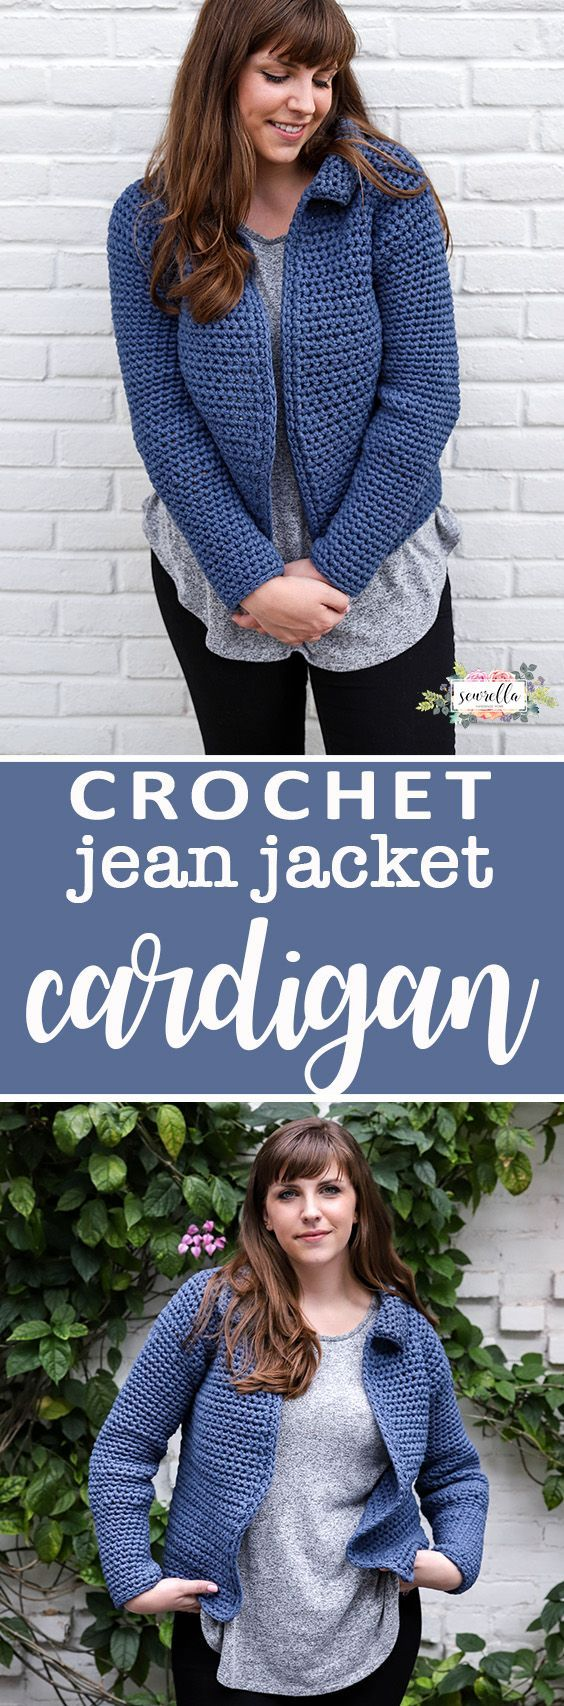 Crochet this simple Jean Jacket Cardigan with just single crochets - very beginner friendly free pattern!